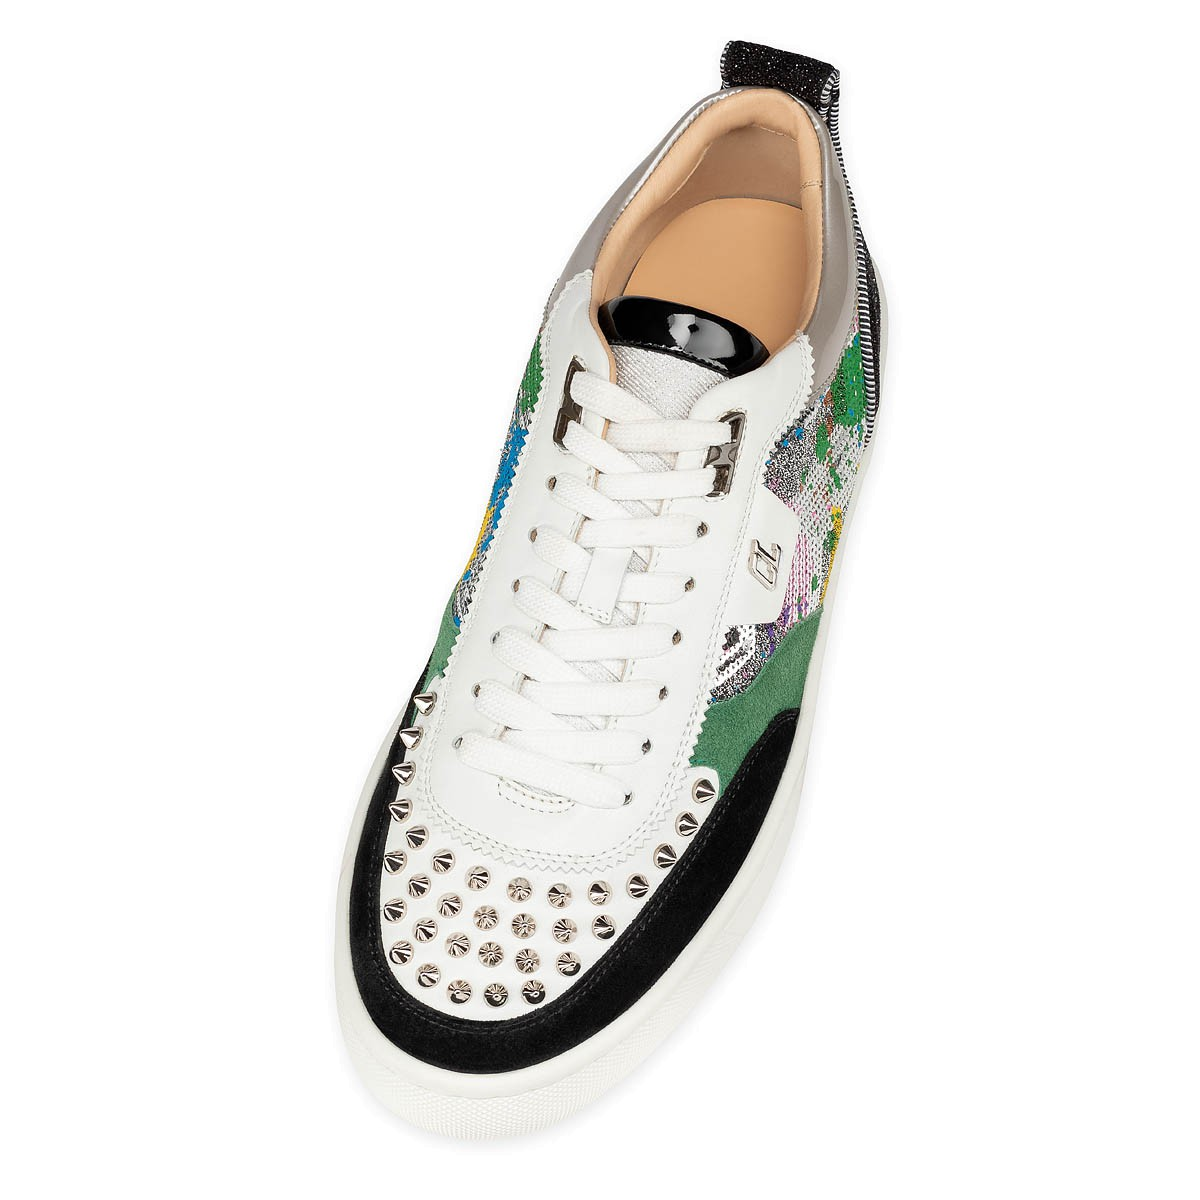 Souliers - Happyrui Spikes - Christian Louboutin